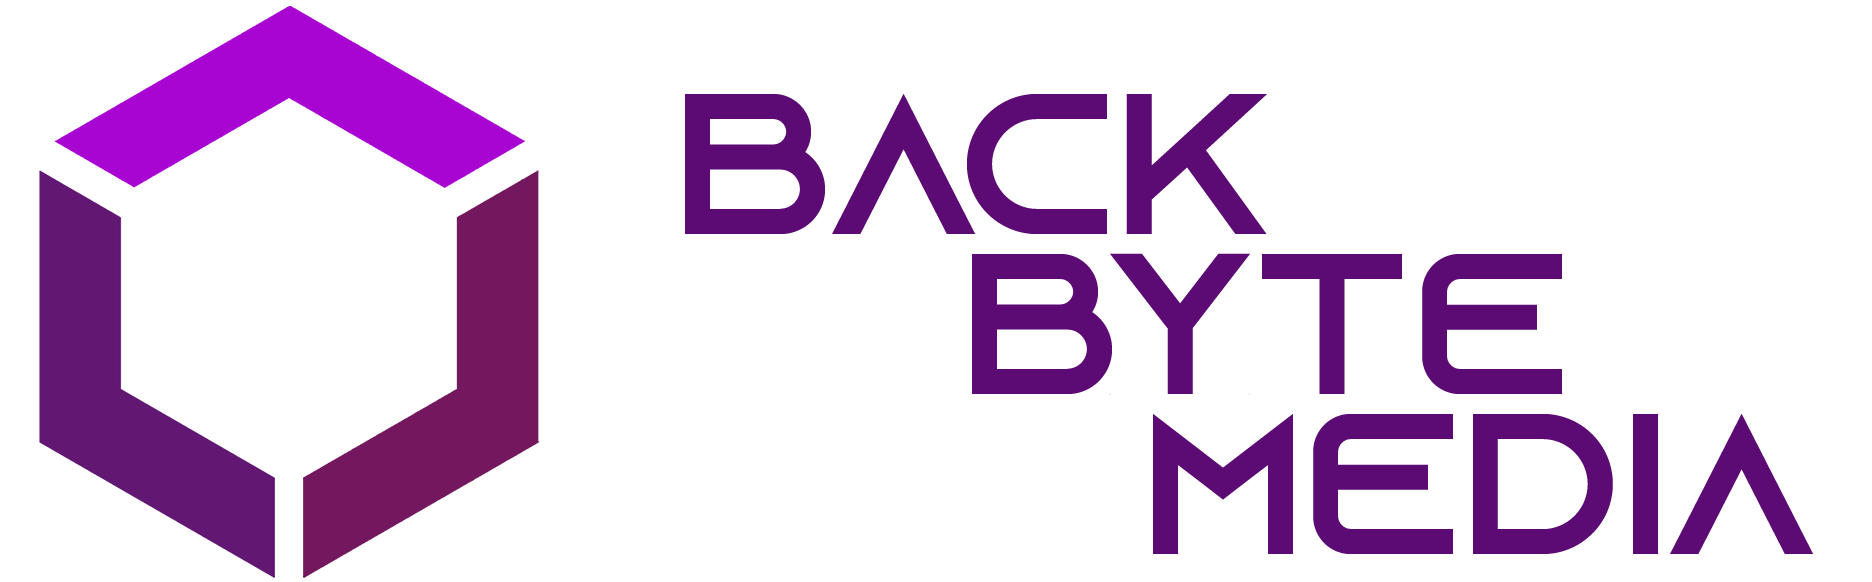 BackByteMedia